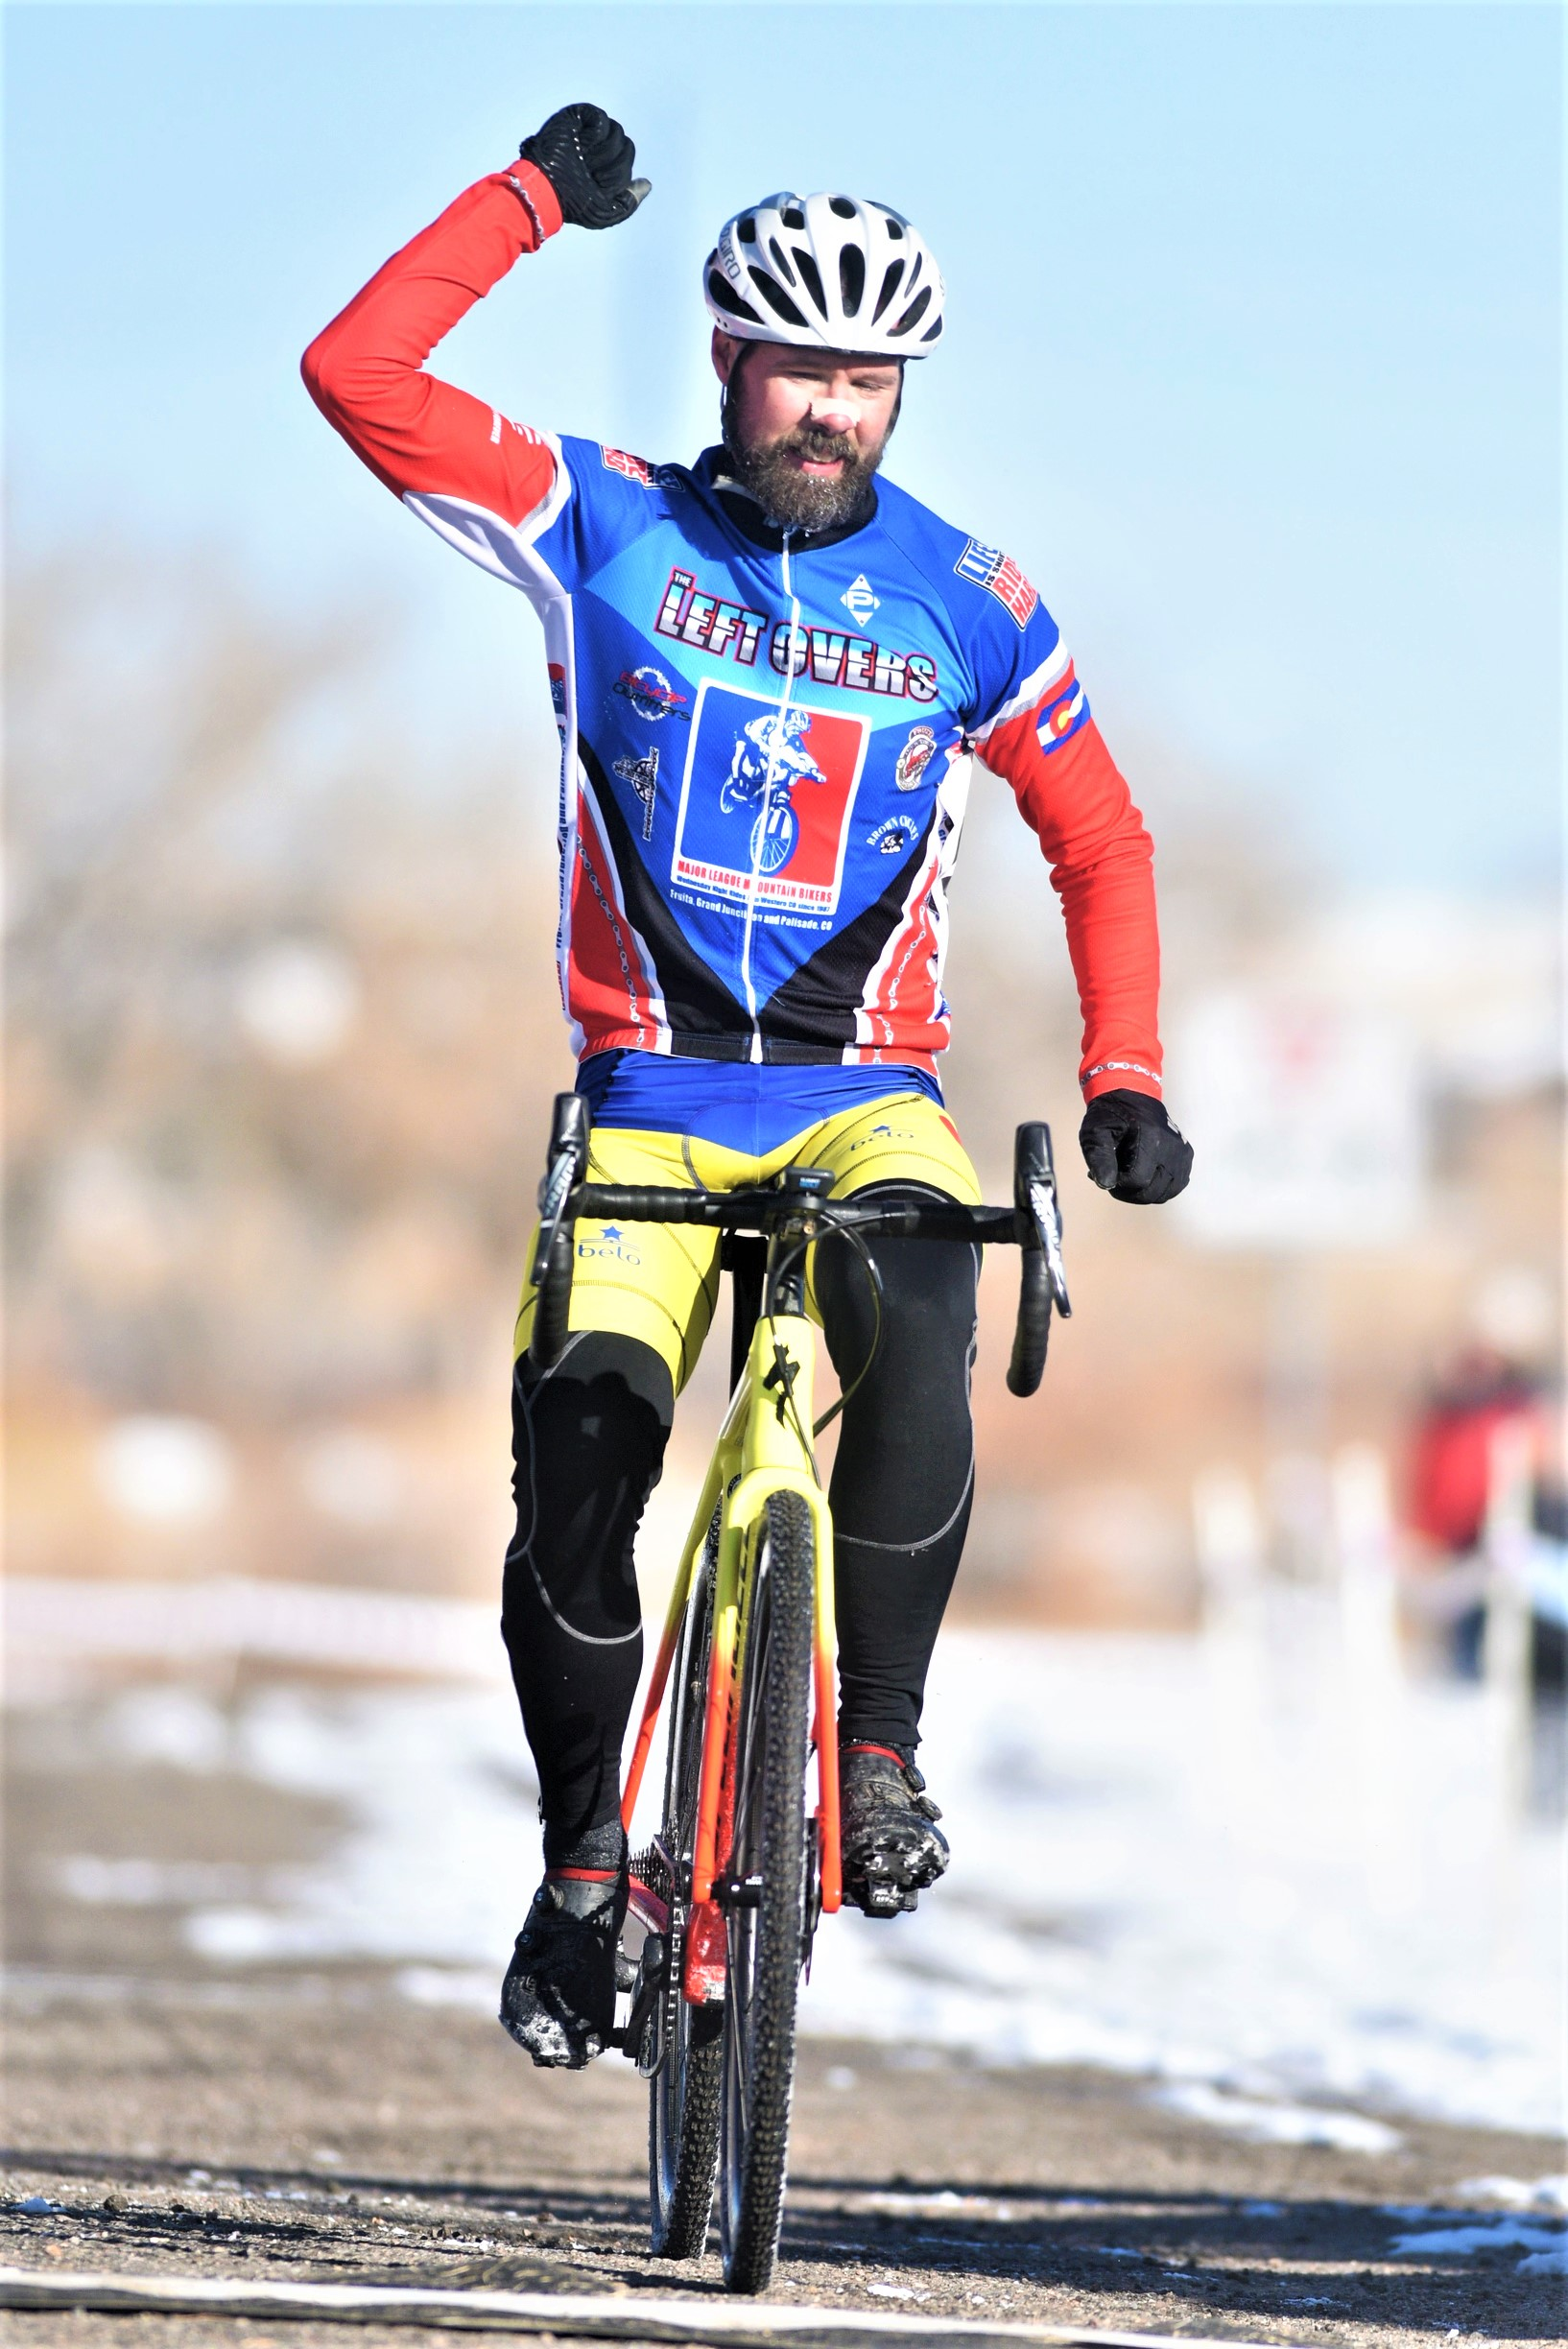 Marc winning the Colorado State Championship race in Parker, CO